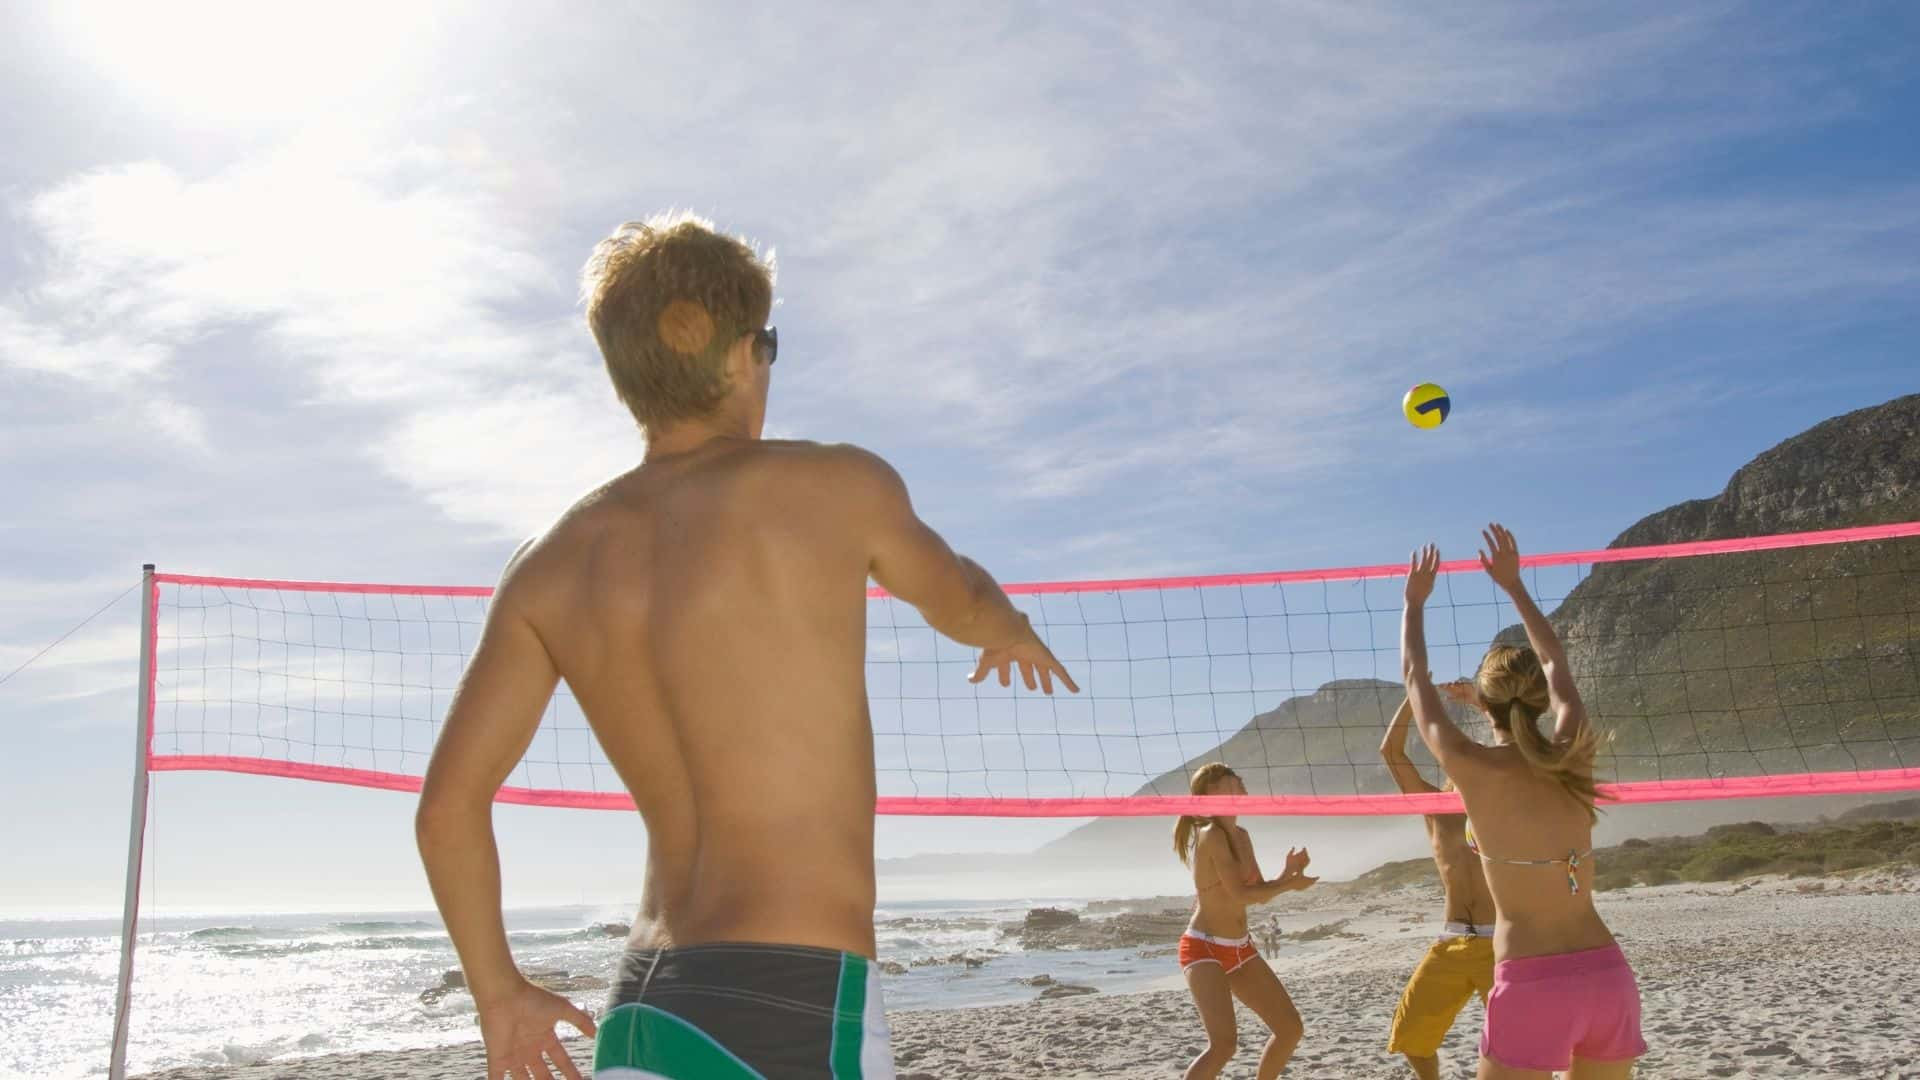 beginners guide to playing beach volleyball